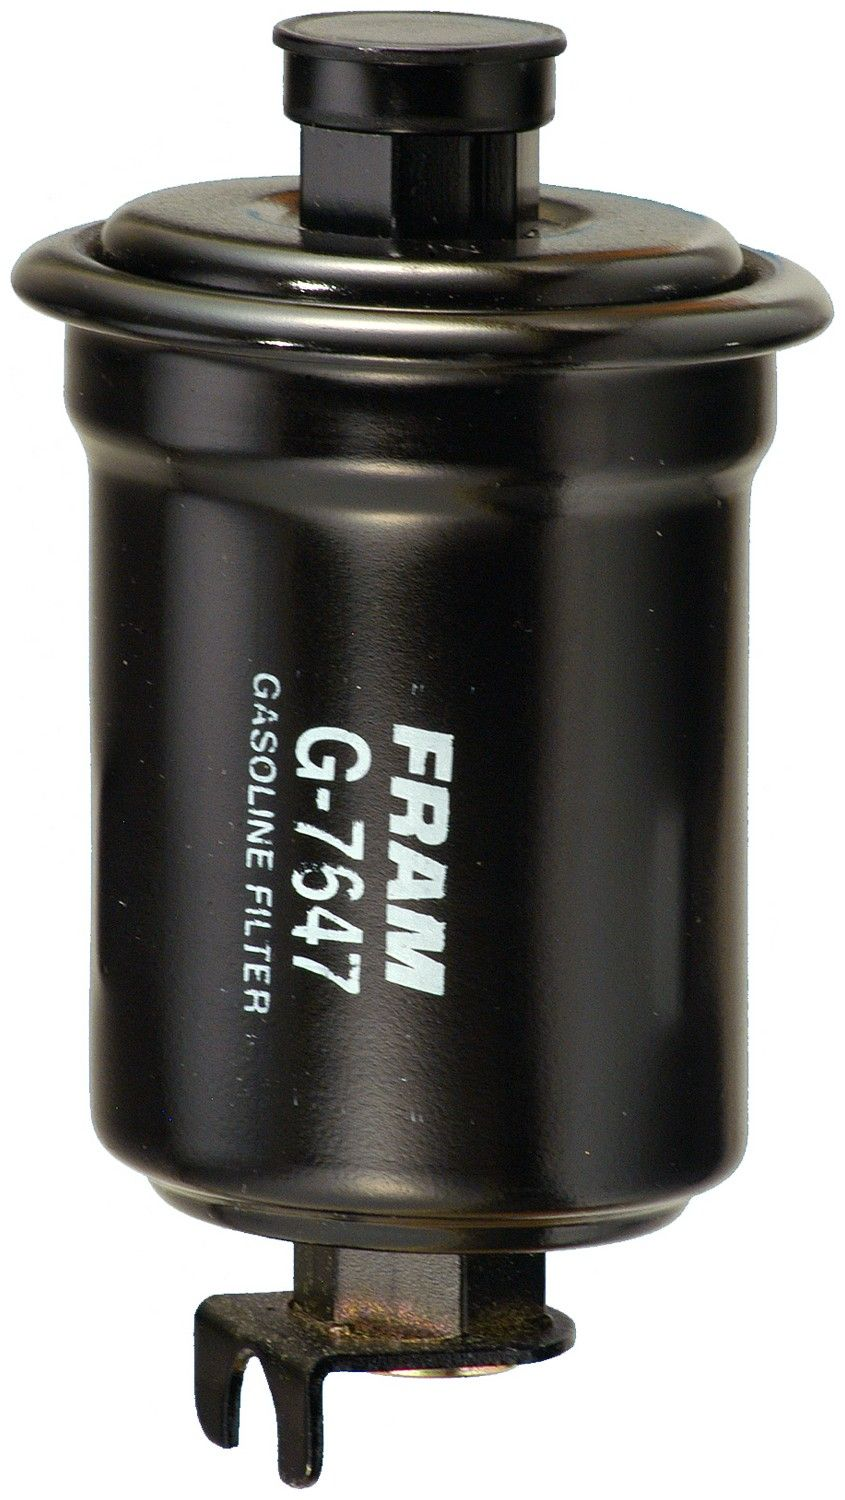 Mitsubishi Galant Fuel Filter Location Wiring Library 2001 Eclipse 1994 Fram G7647 In Line Recommended Based